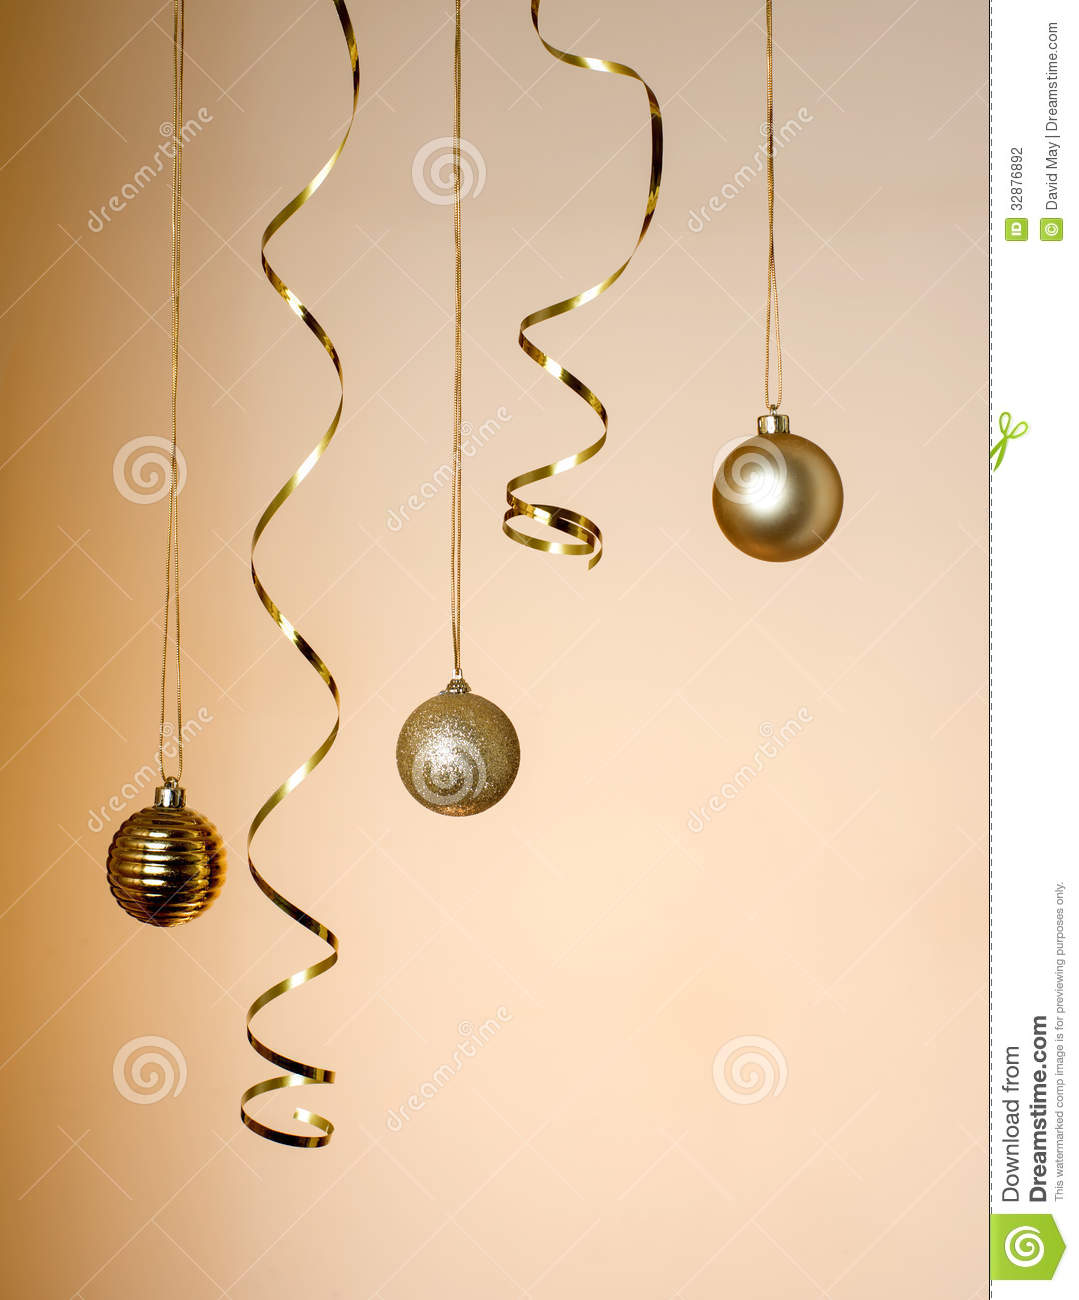 Christmas decorations hanging stock photo image 32876892 for Hanging christmas decorations